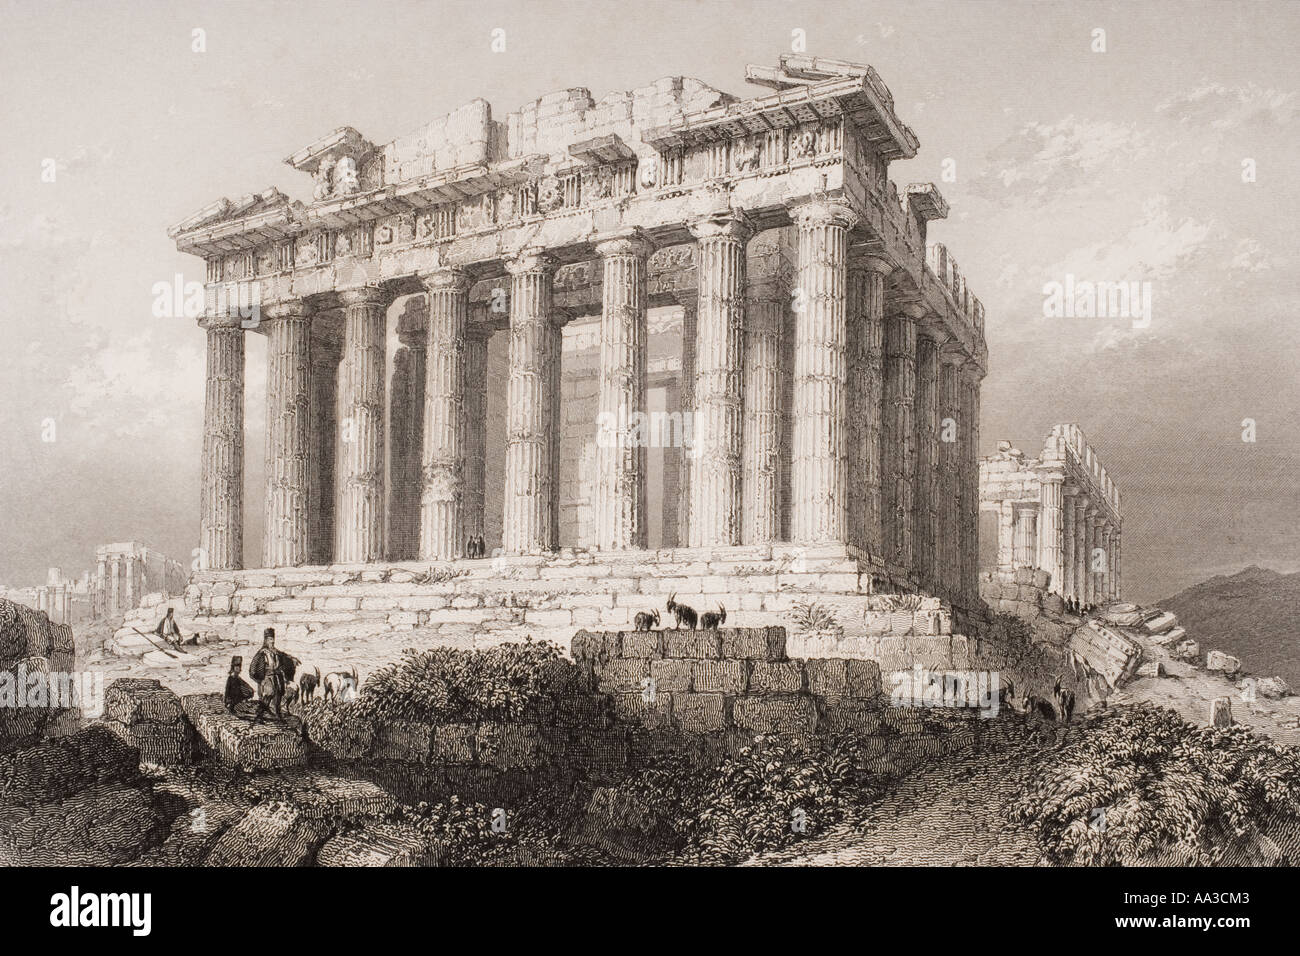 The Parthenon at Athens Greece in the 19th century - Stock Image